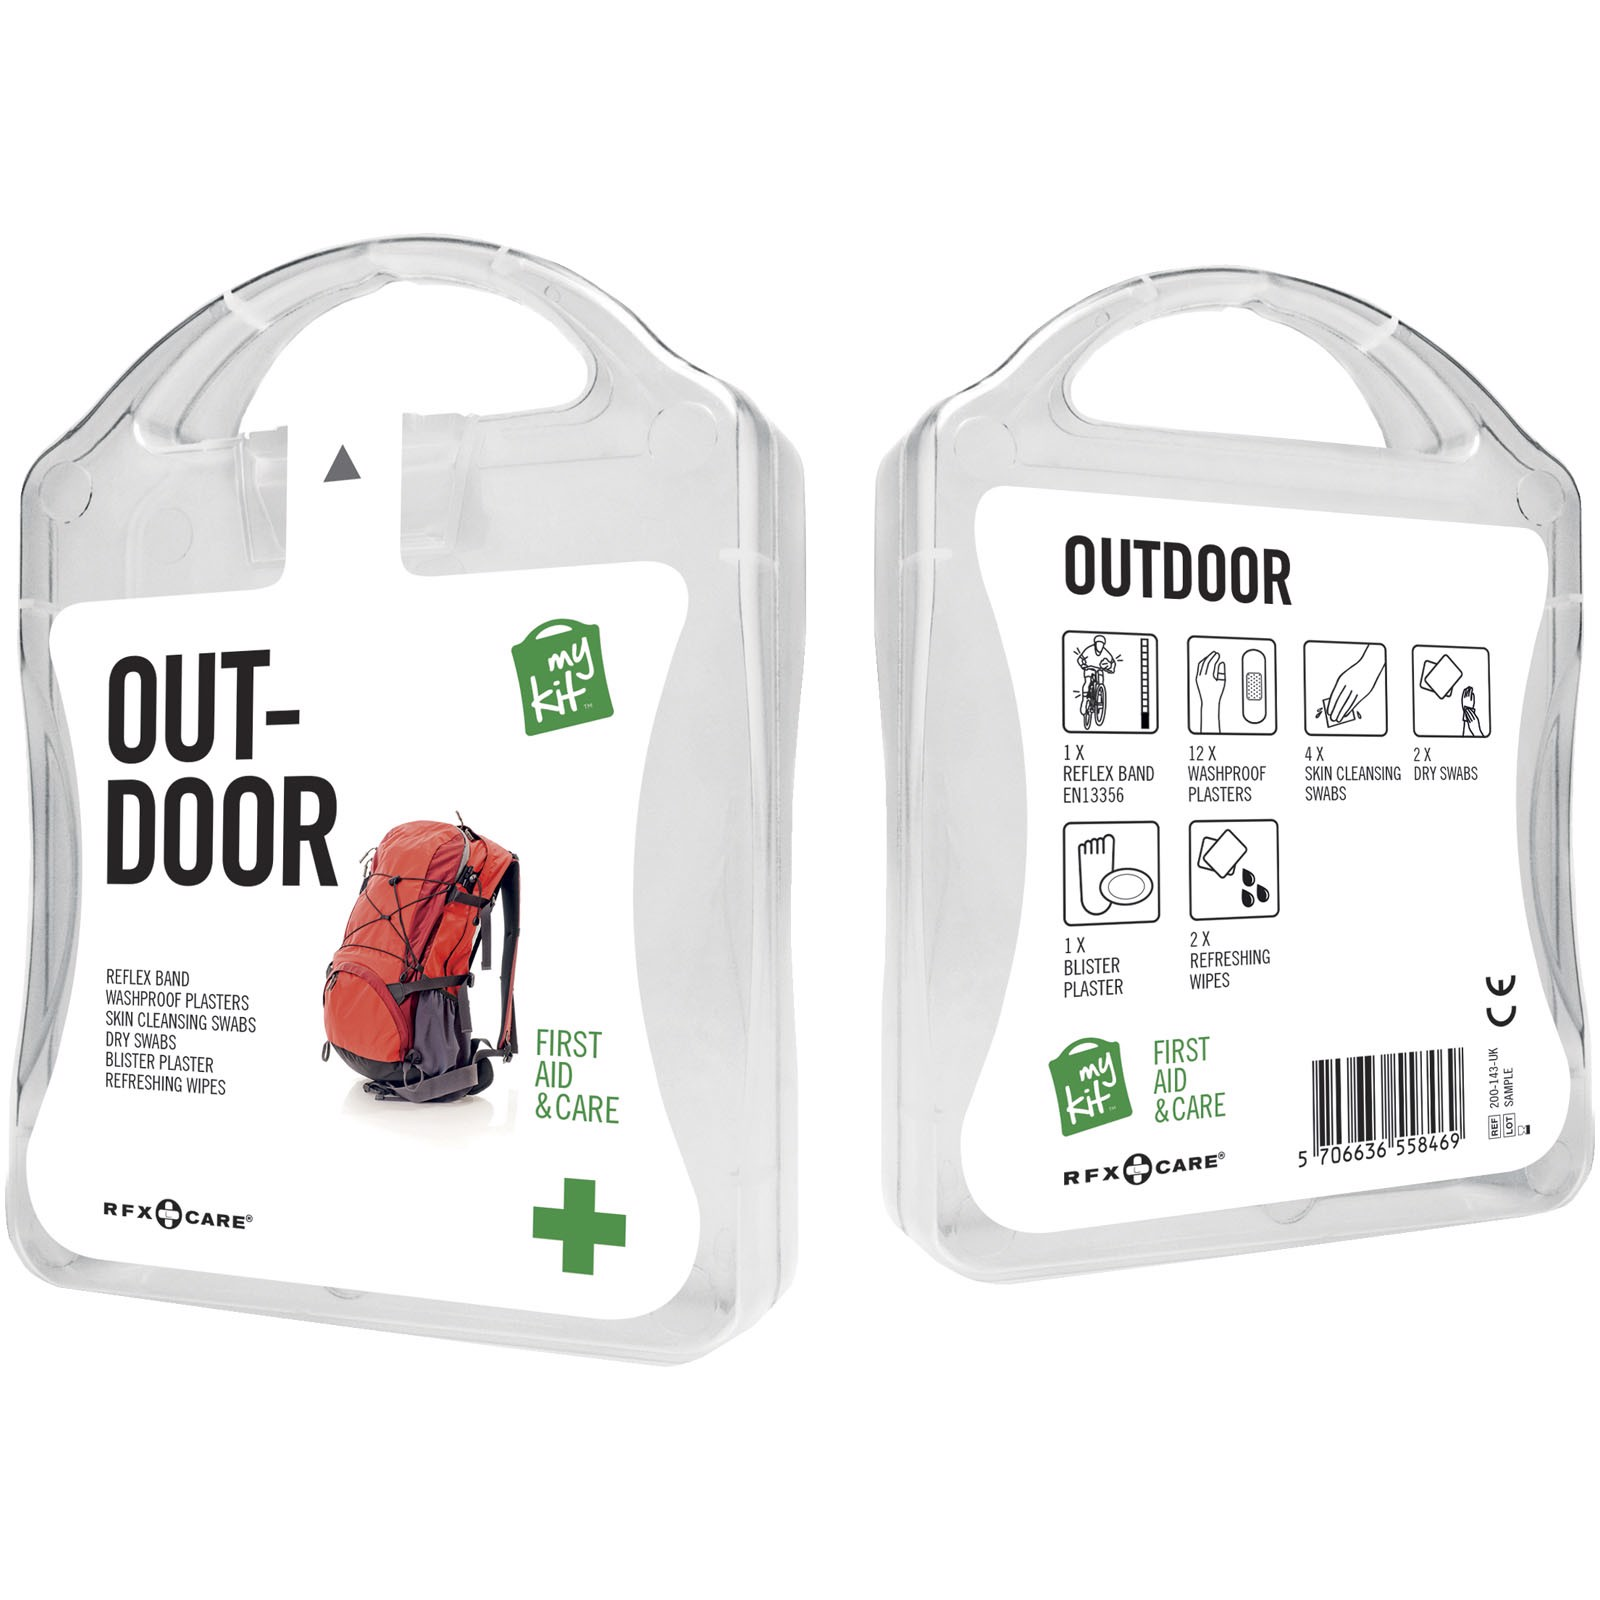 MyKit Outdoor First Aid Kit - White